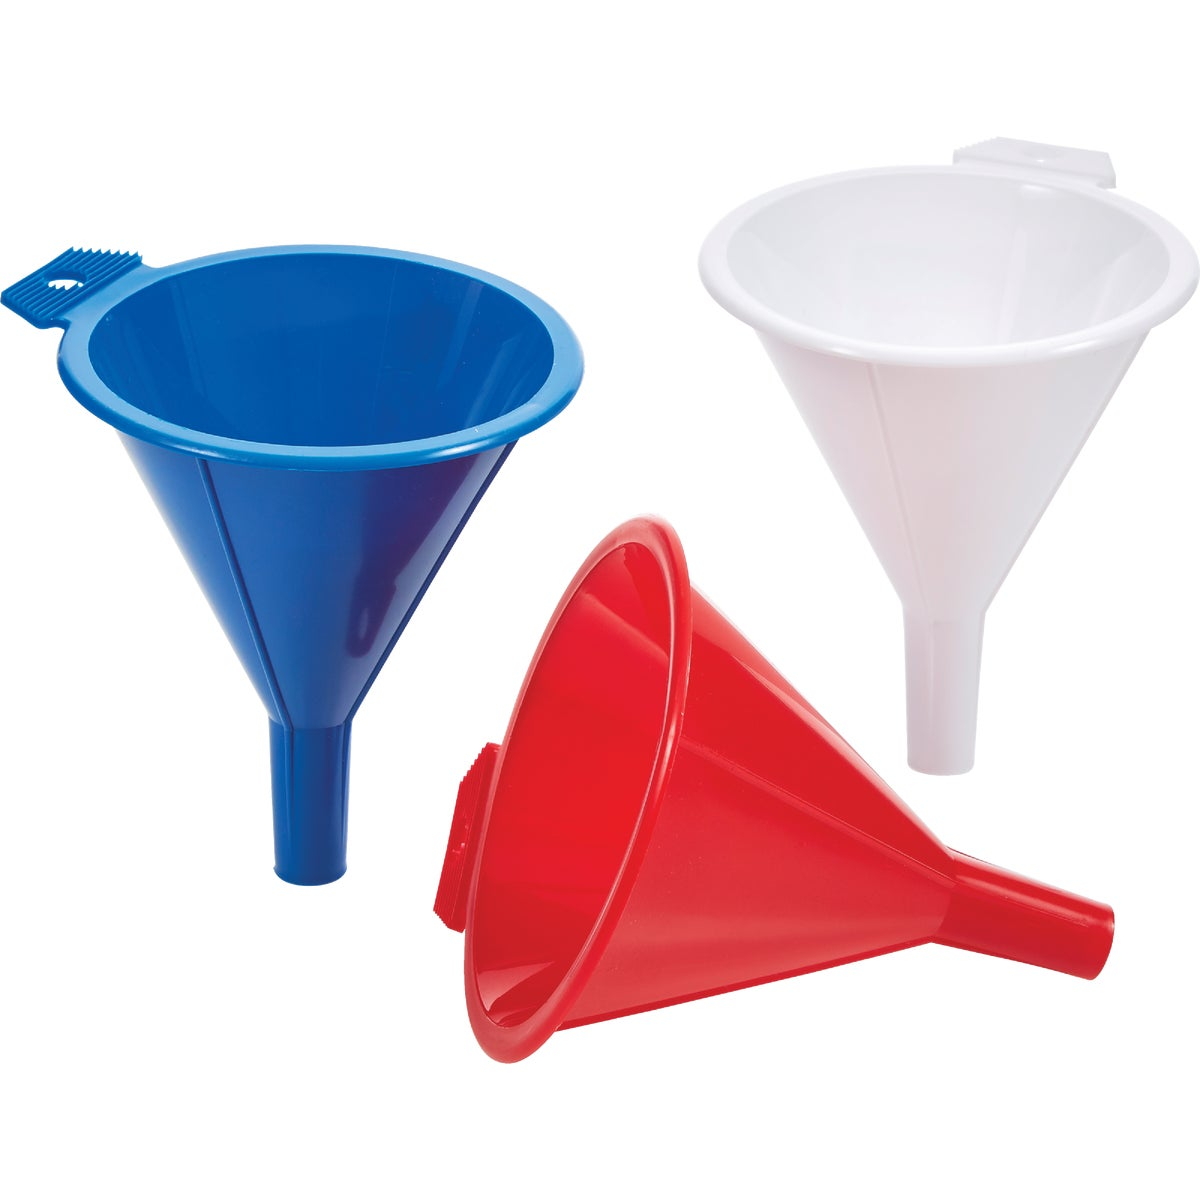 4OZ FUNNEL - 00121 by Arrow Plastic Mfg Co